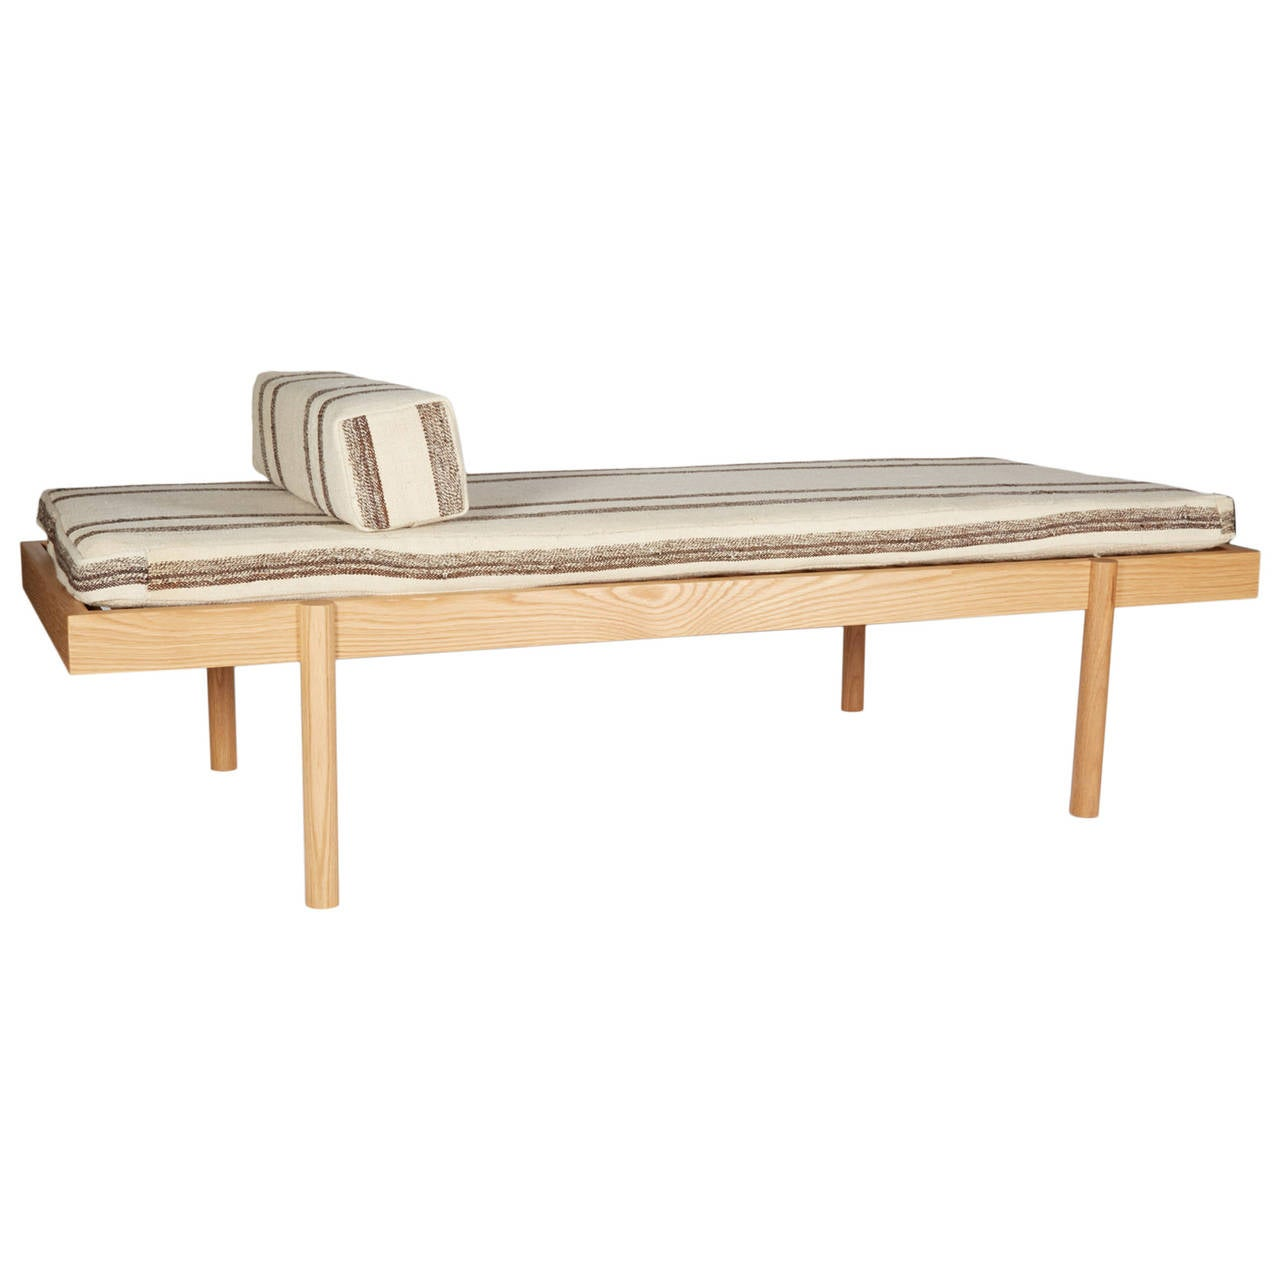 WC2 Daybed by ASH NYC with Limited Woven Accents Kilim Upholstery, One of Five For Sale